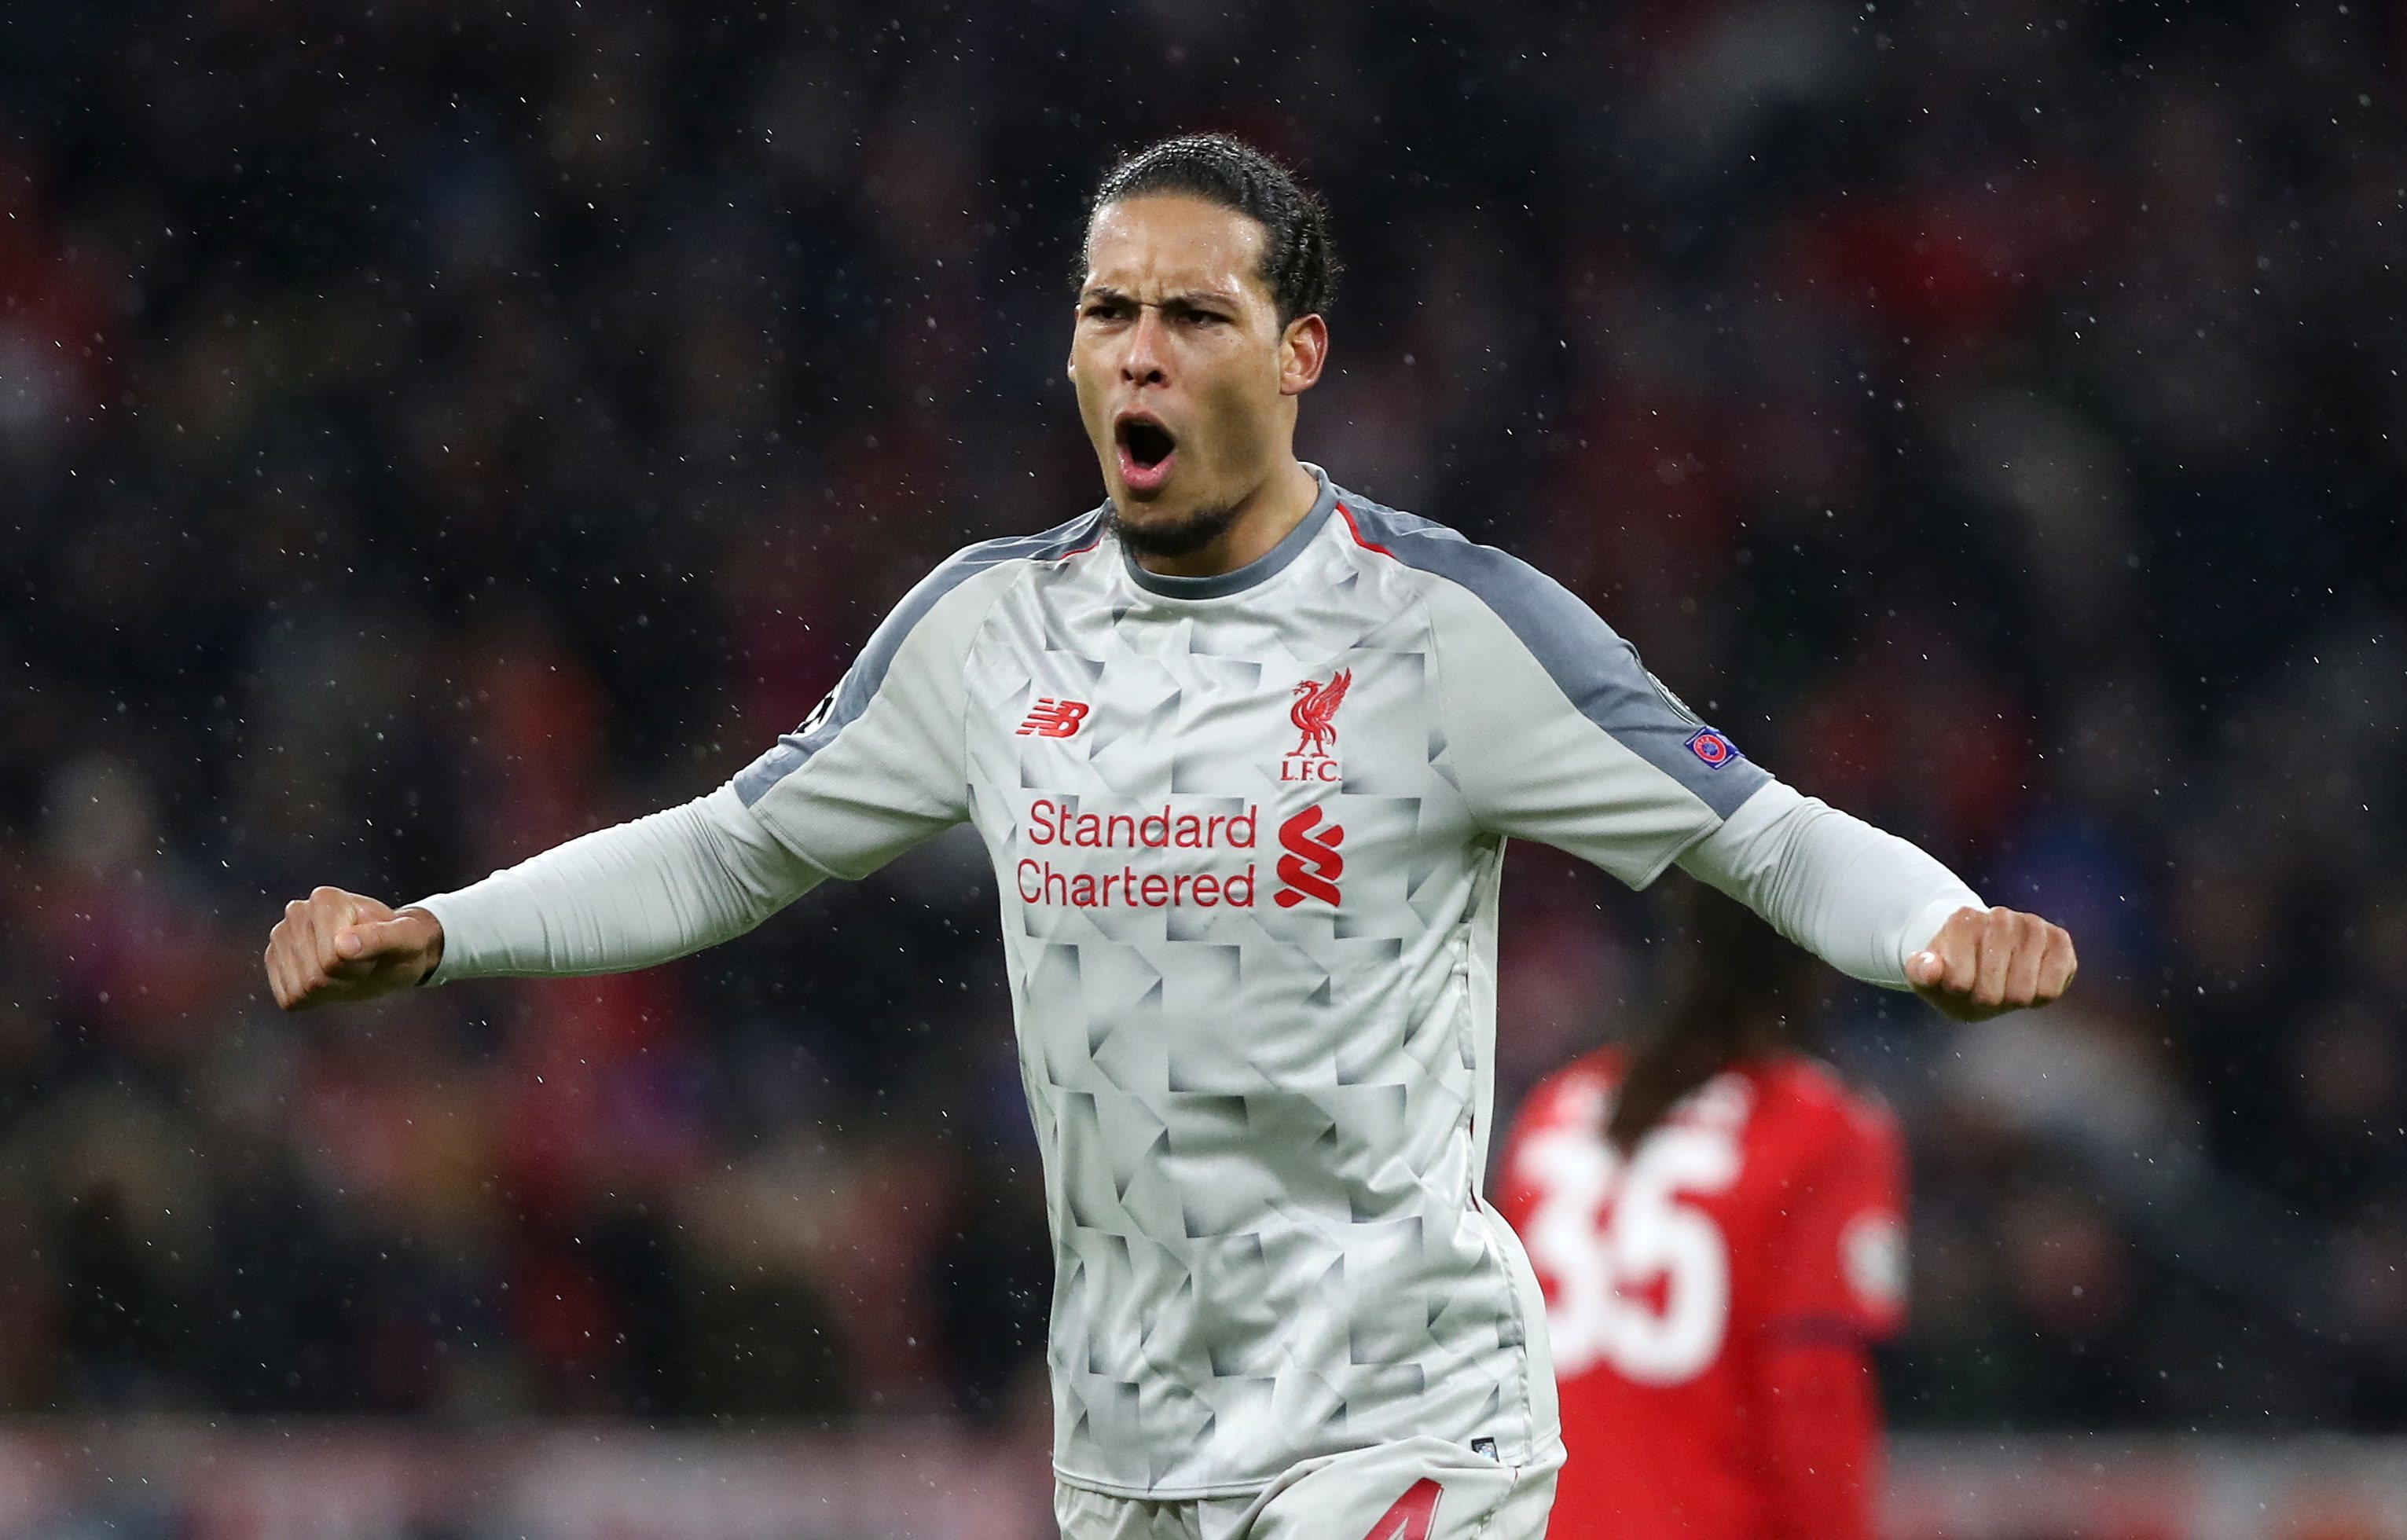 Sterling reveals he snubbed Van Dijk for Kane